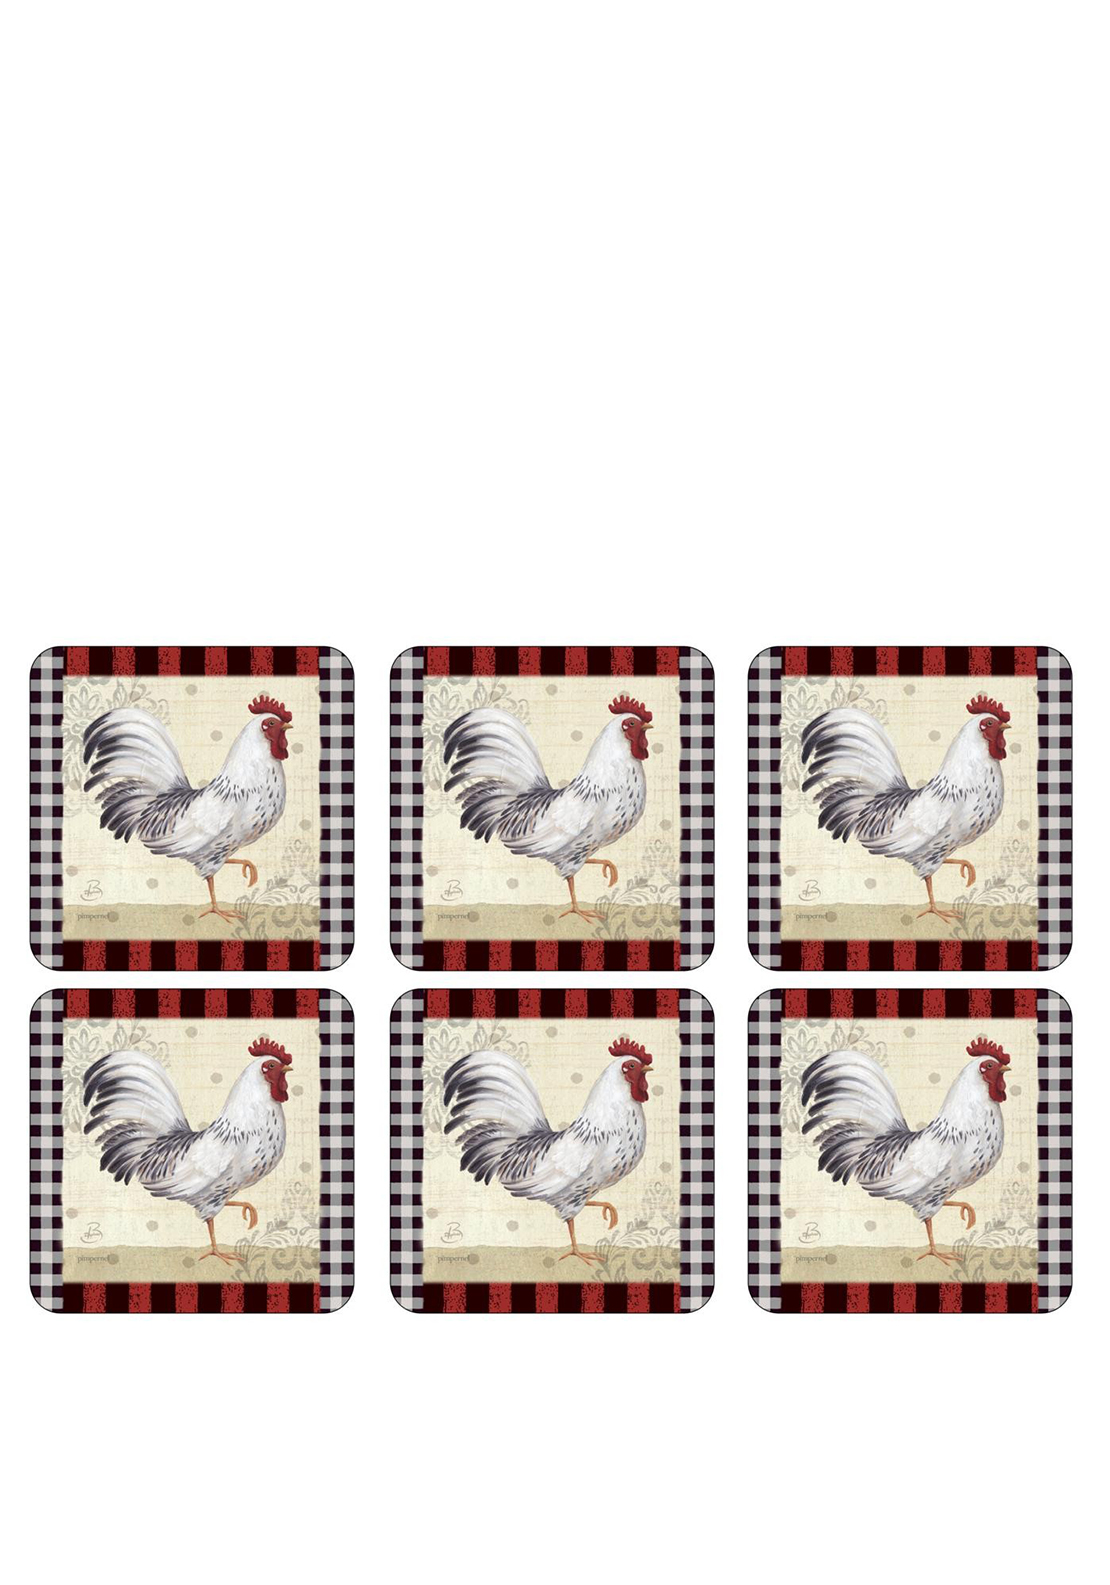 Pimpernel Country Touch Set of 6 Coasters